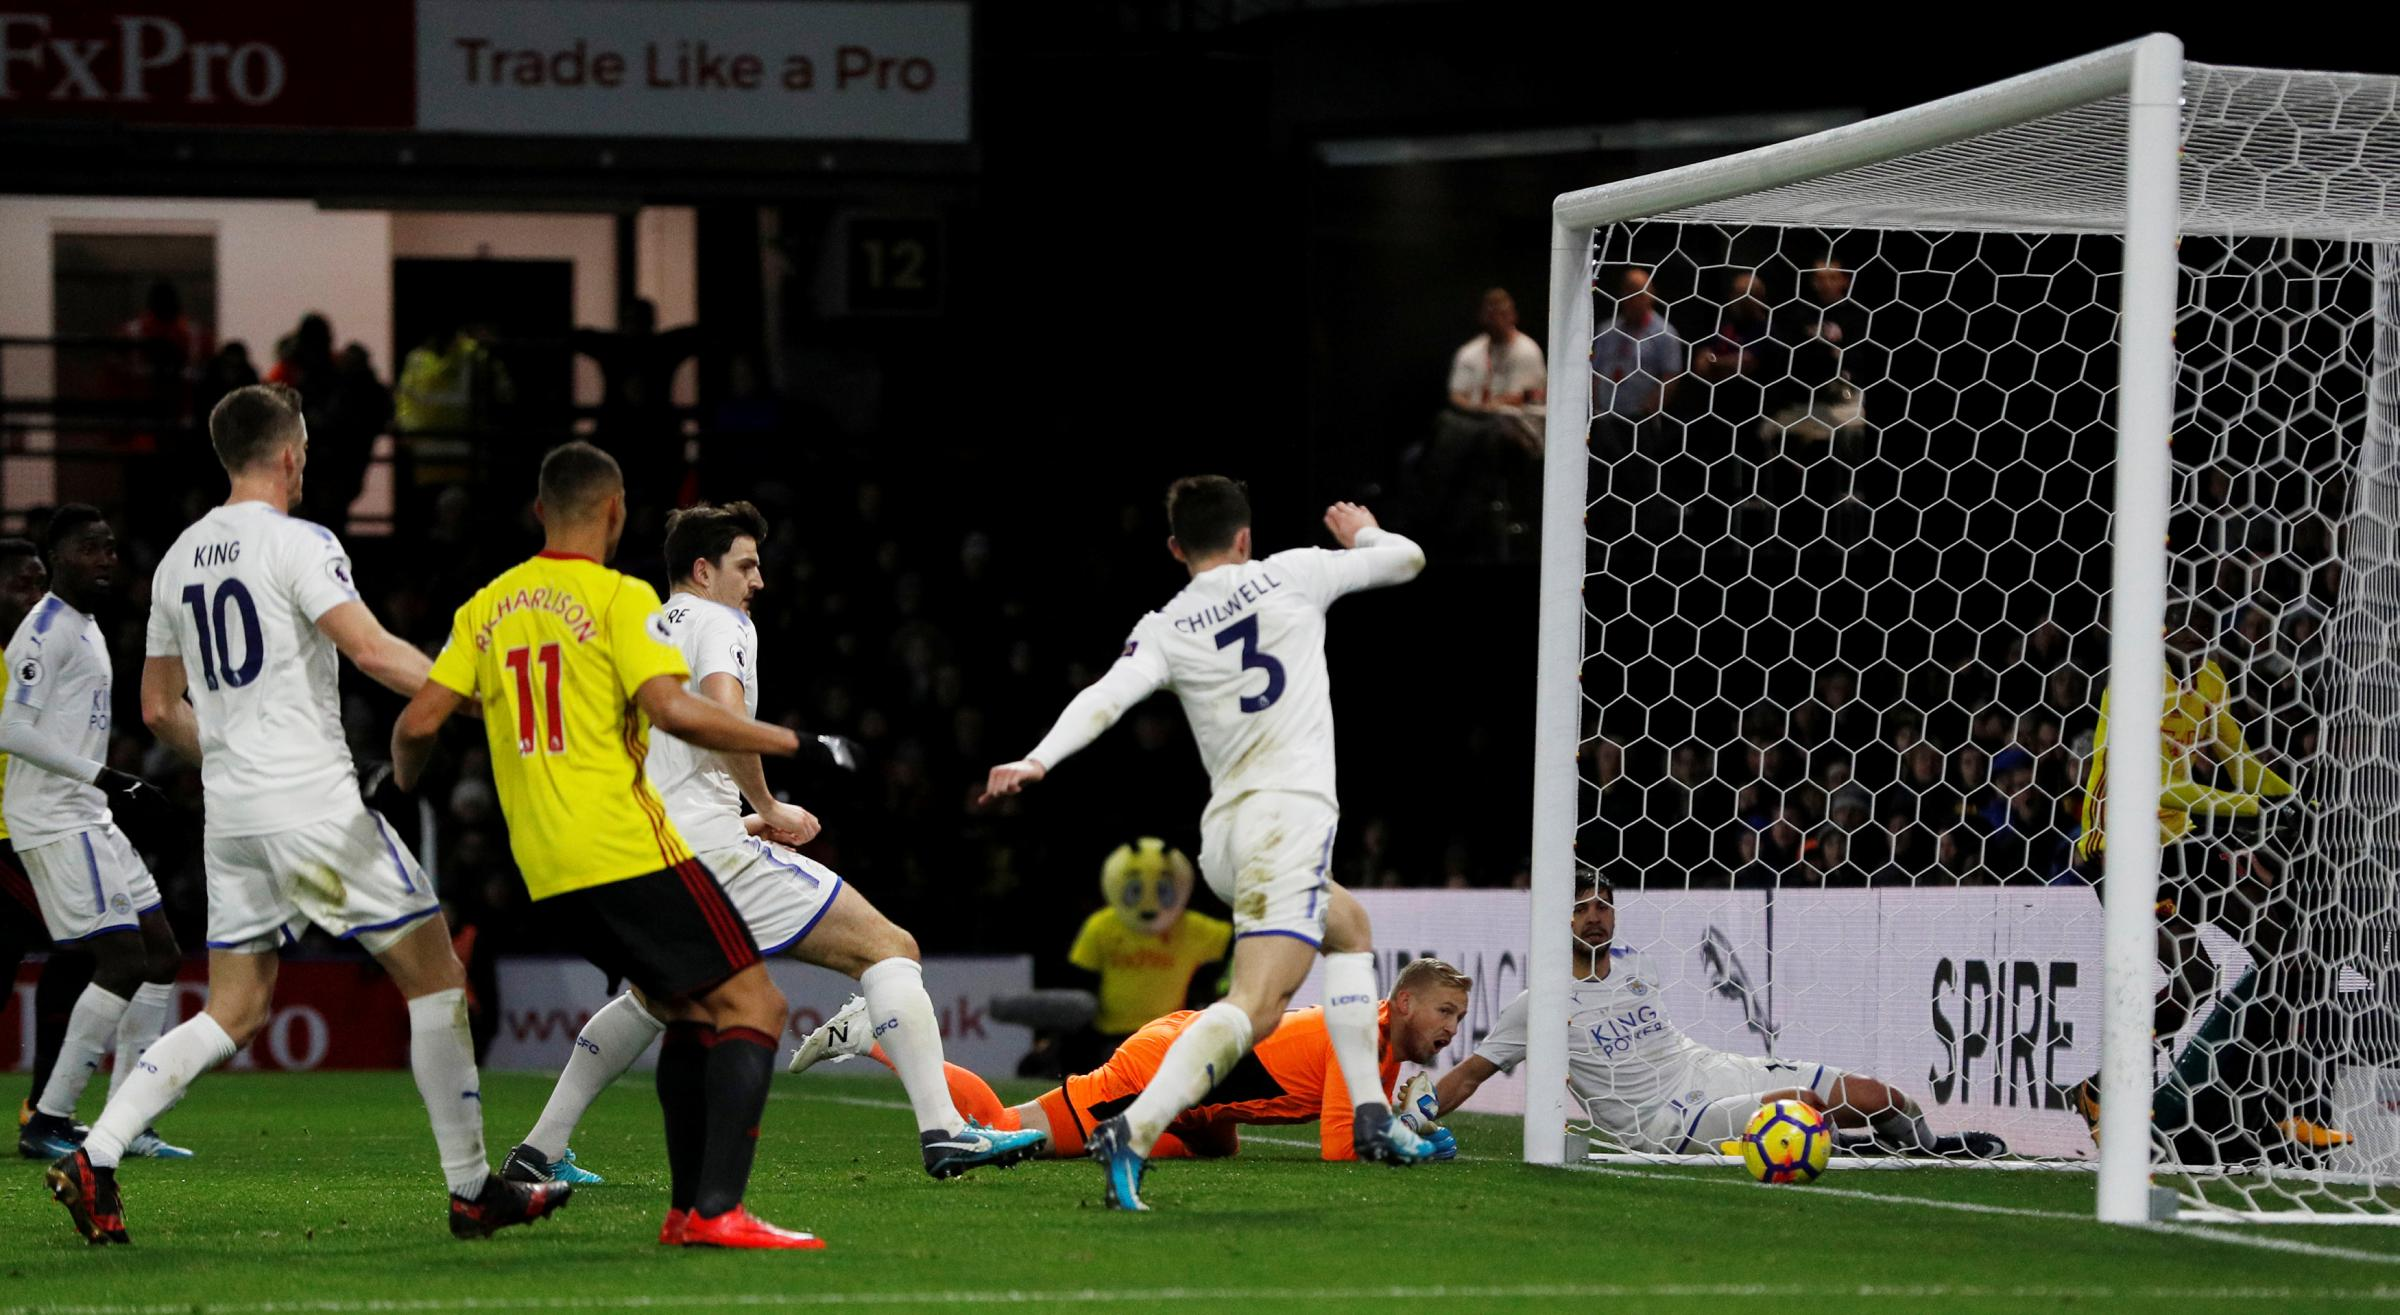 Abdoulaye Doucoure was not enjoying his best Watford performance before Kasper Schmeichel turned his shot over the line. Picture: Action Images